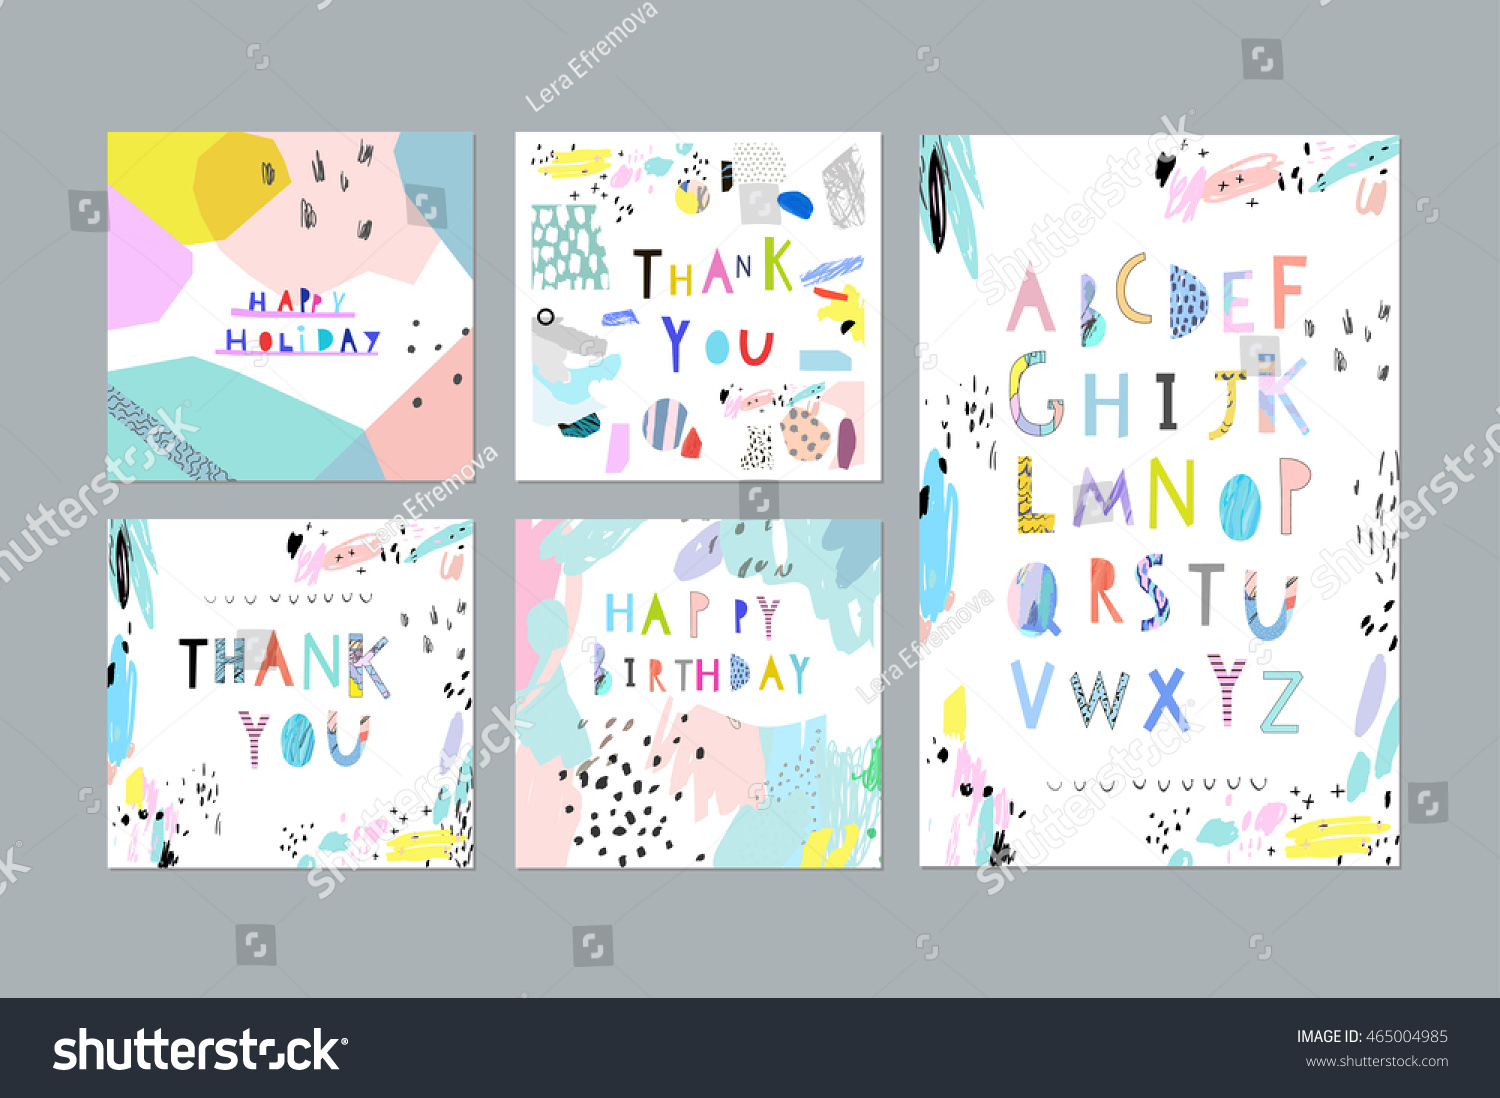 thank you happy birthday happy holiday cards and posters plus hand drawn artistic alphabet - Artistic Holiday Cards